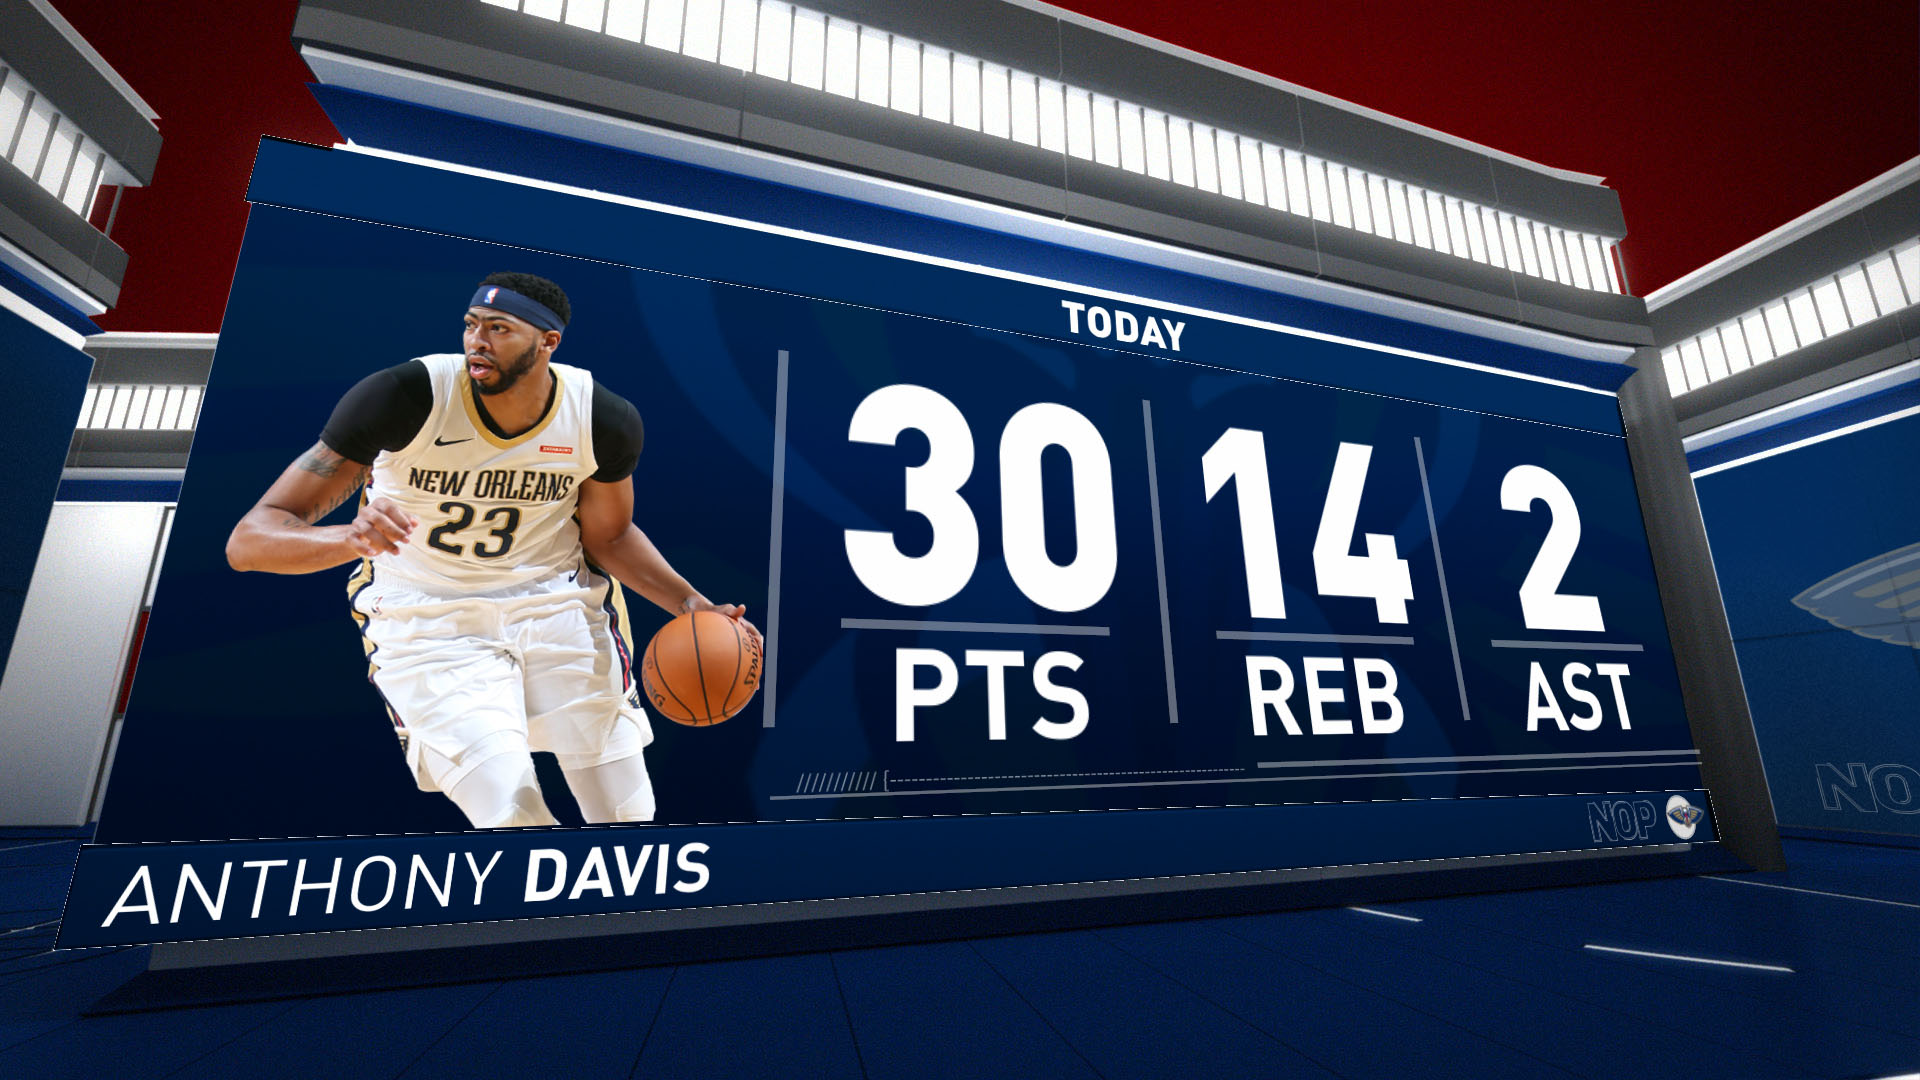 Highlights: Anthony Davis - Pelicans Vs. Timberwolves